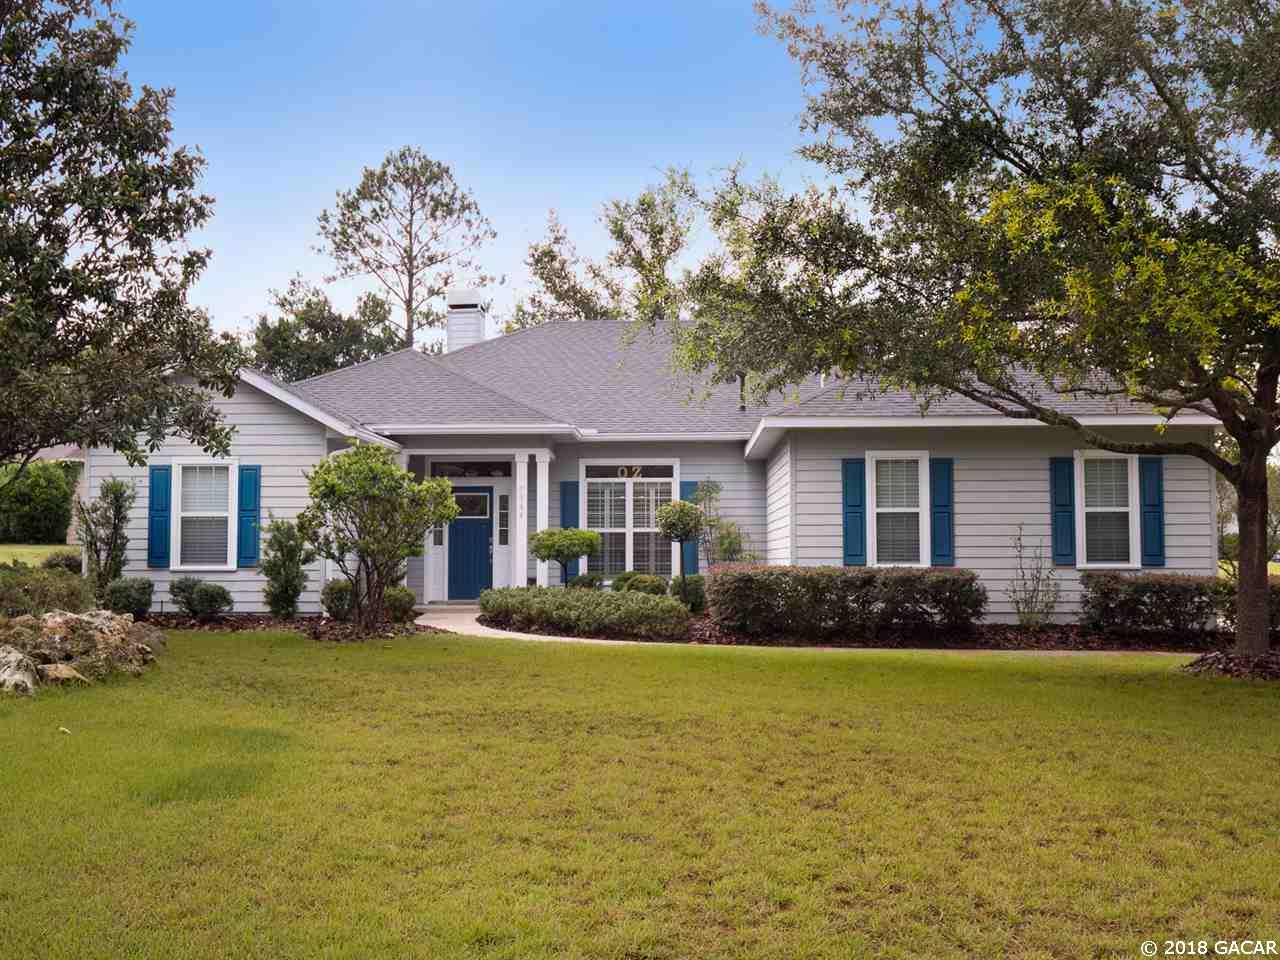 singles in alachua You can even look for top real estate agents in alachua that specialize in selling, buying, speed, bargains, single family homes, condos, or townhouses.